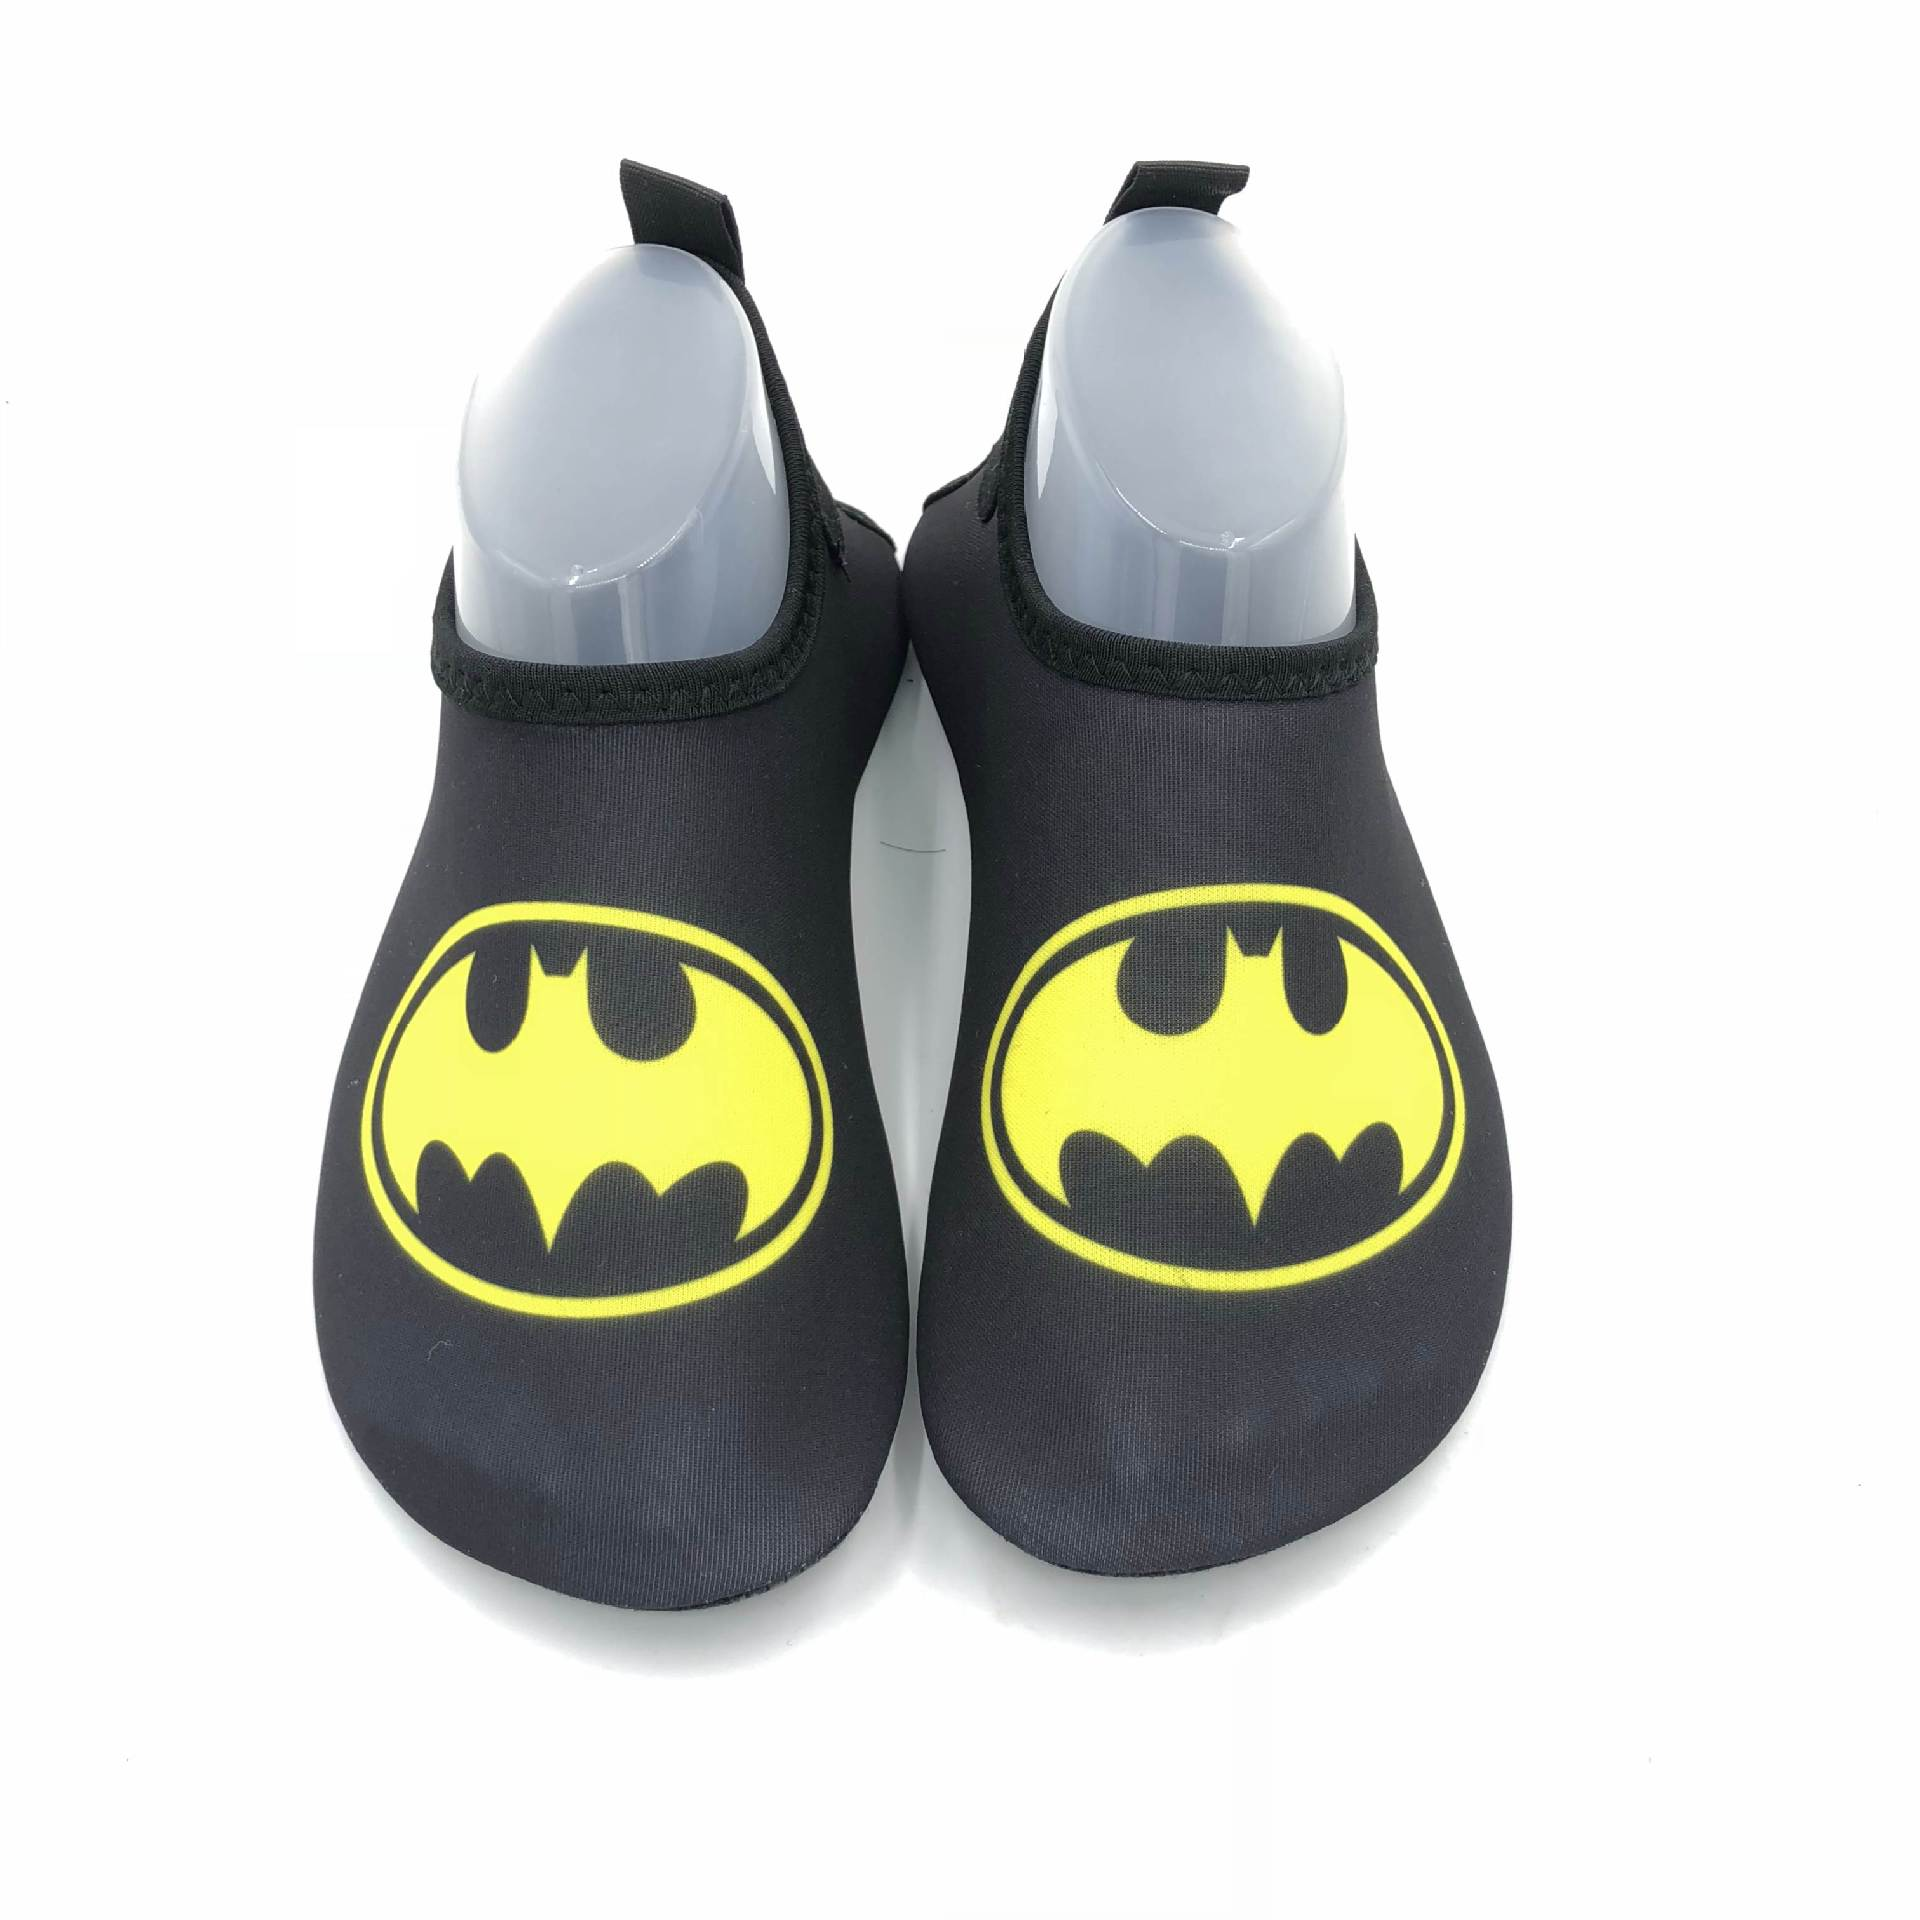 Cute Cartoon Kids Beach Shoes Non-slip Girls Swimming Shoes Ultralight Barefoot Skin Soft Water Socks Children Shoes for BoysCute Cartoon Kids Beach Shoes Non-slip Girls Swimming Shoes Ultralight Barefoot Skin Soft Water Socks Children Shoes for Boys